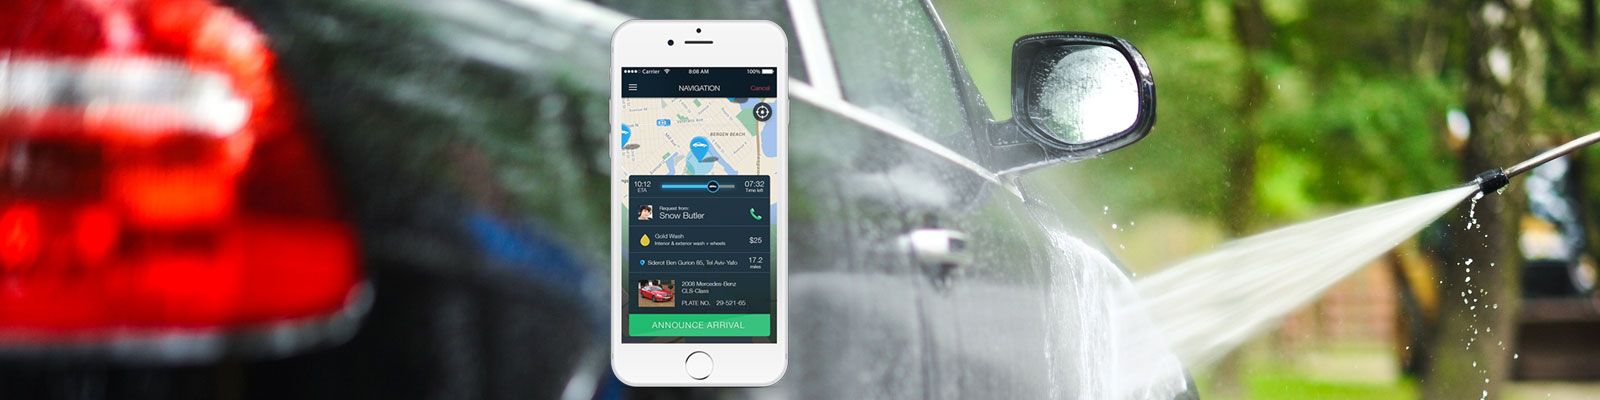 Develop Your Own On Demand Car Wash Cleaning Mobile App Hyperlink